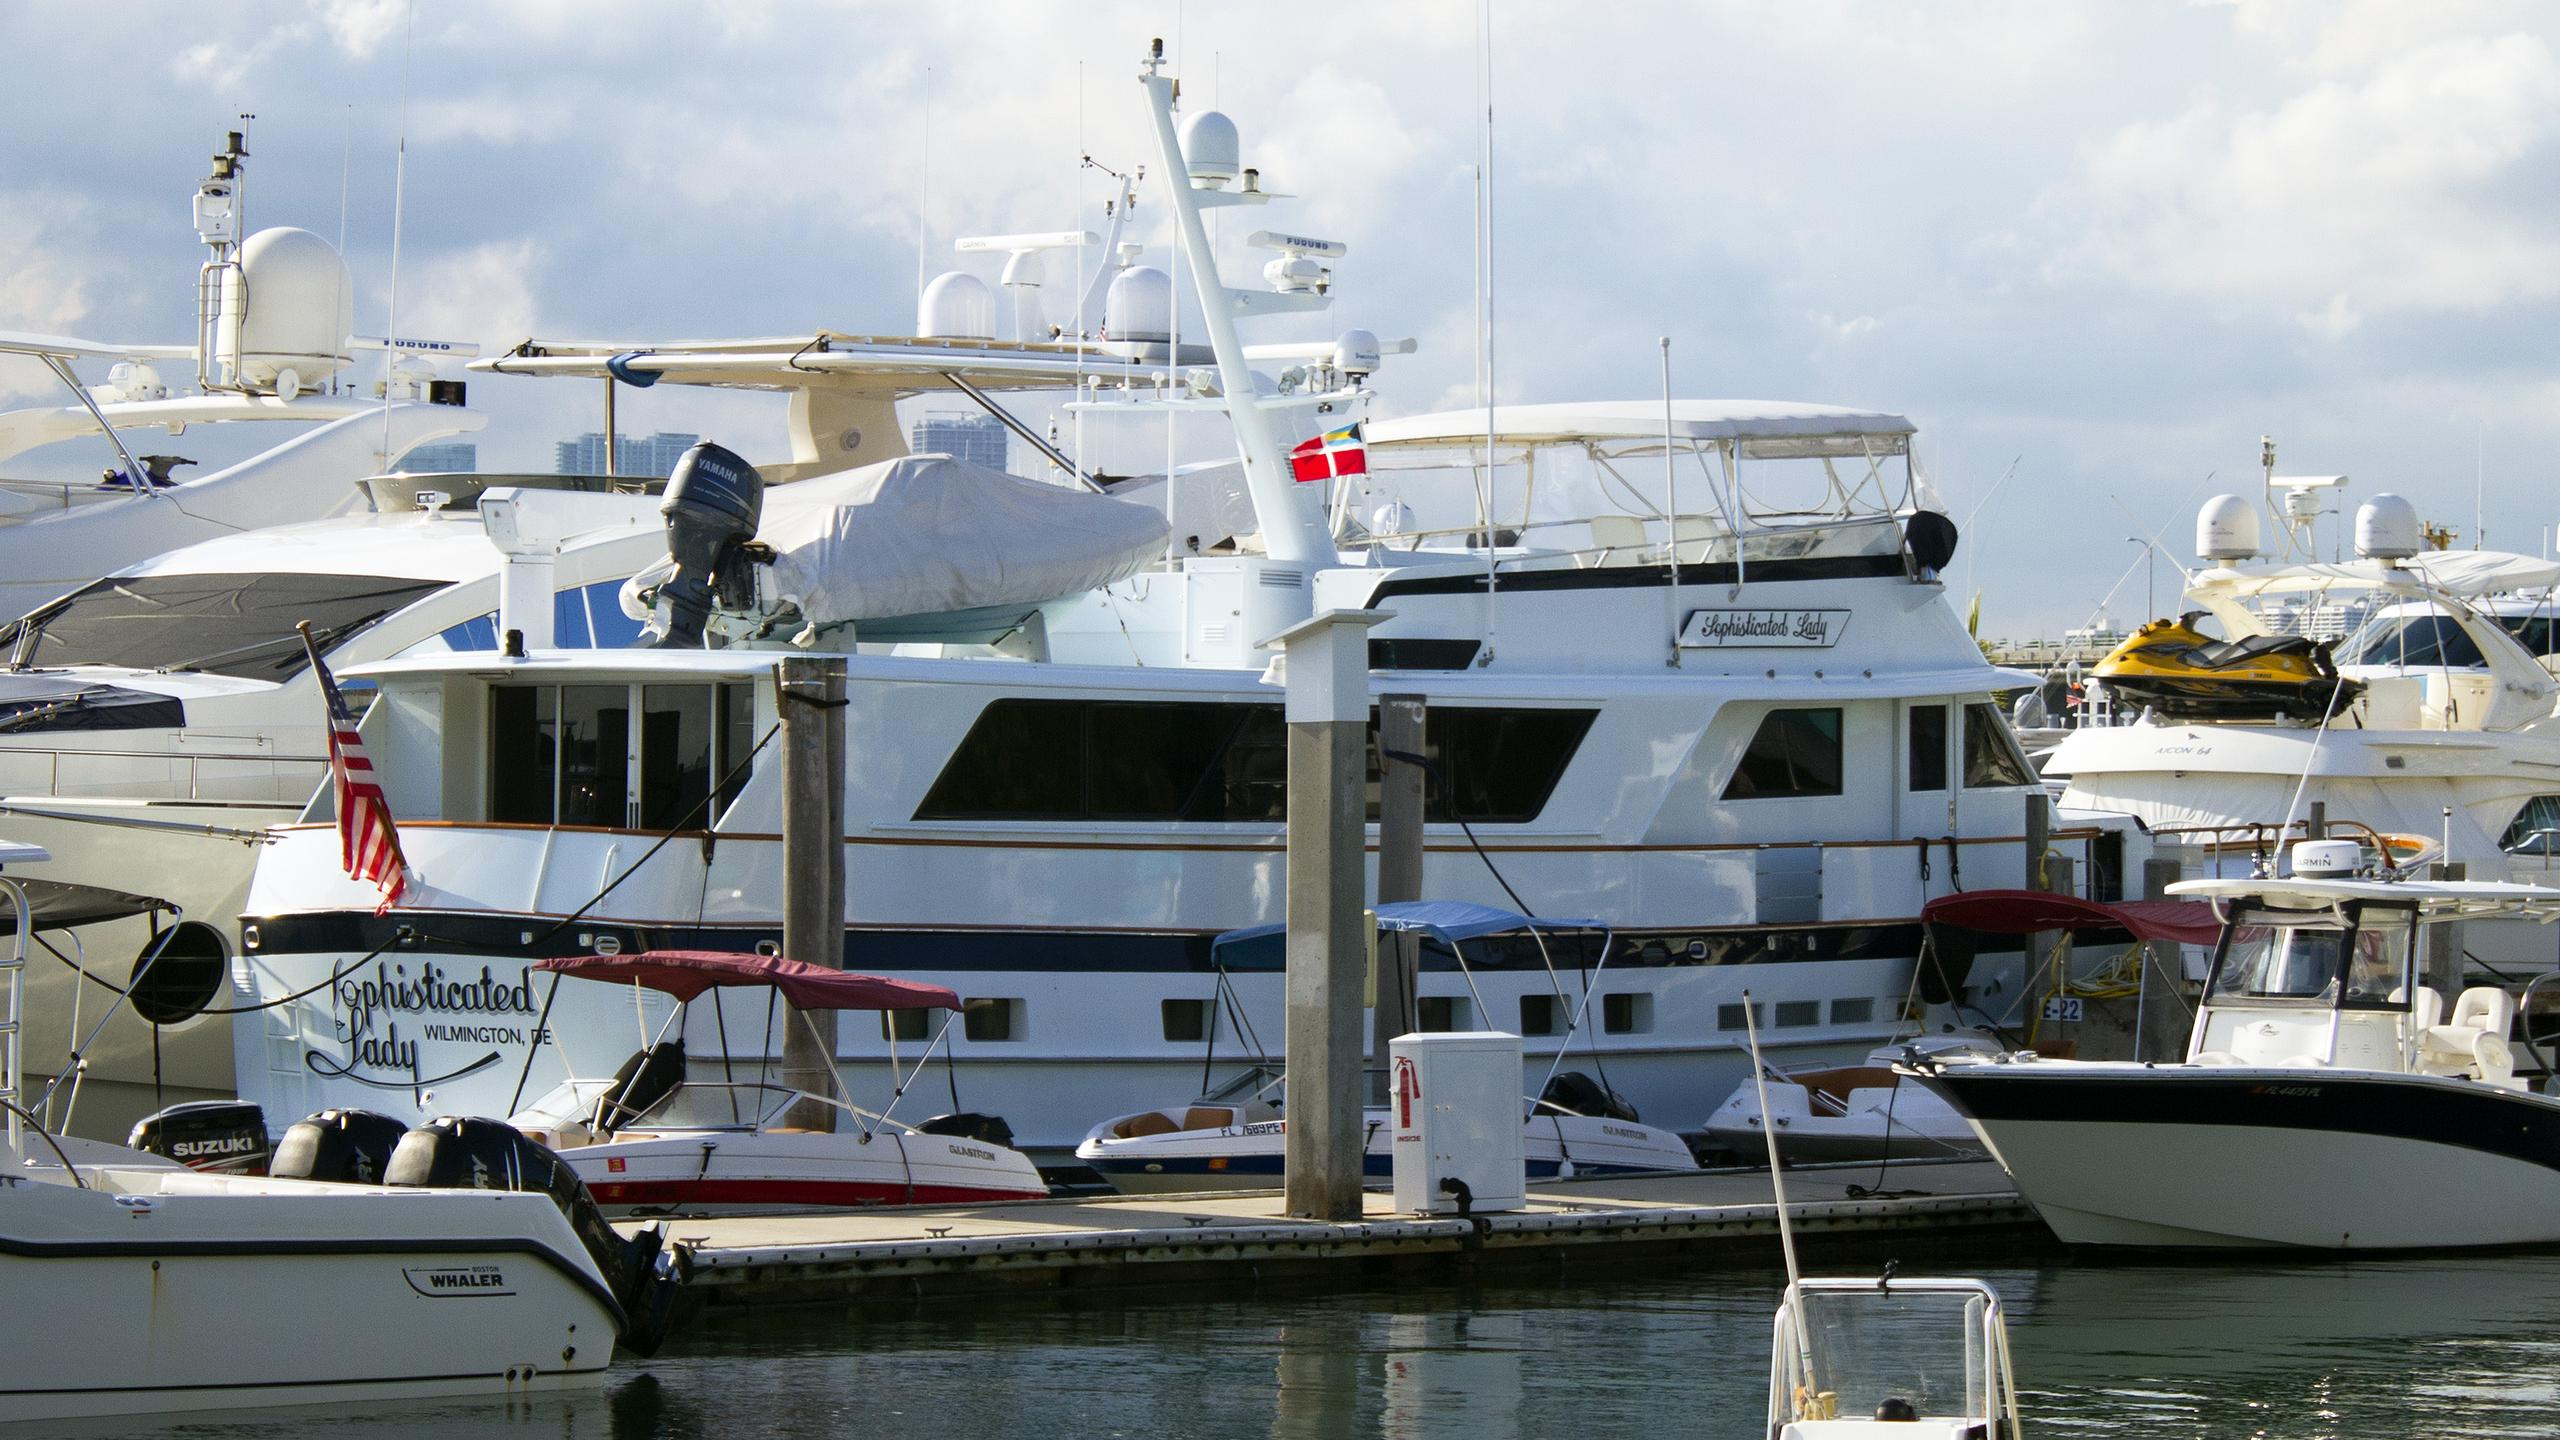 burger-boat-sophisticated-lady-1987-motor-yacht